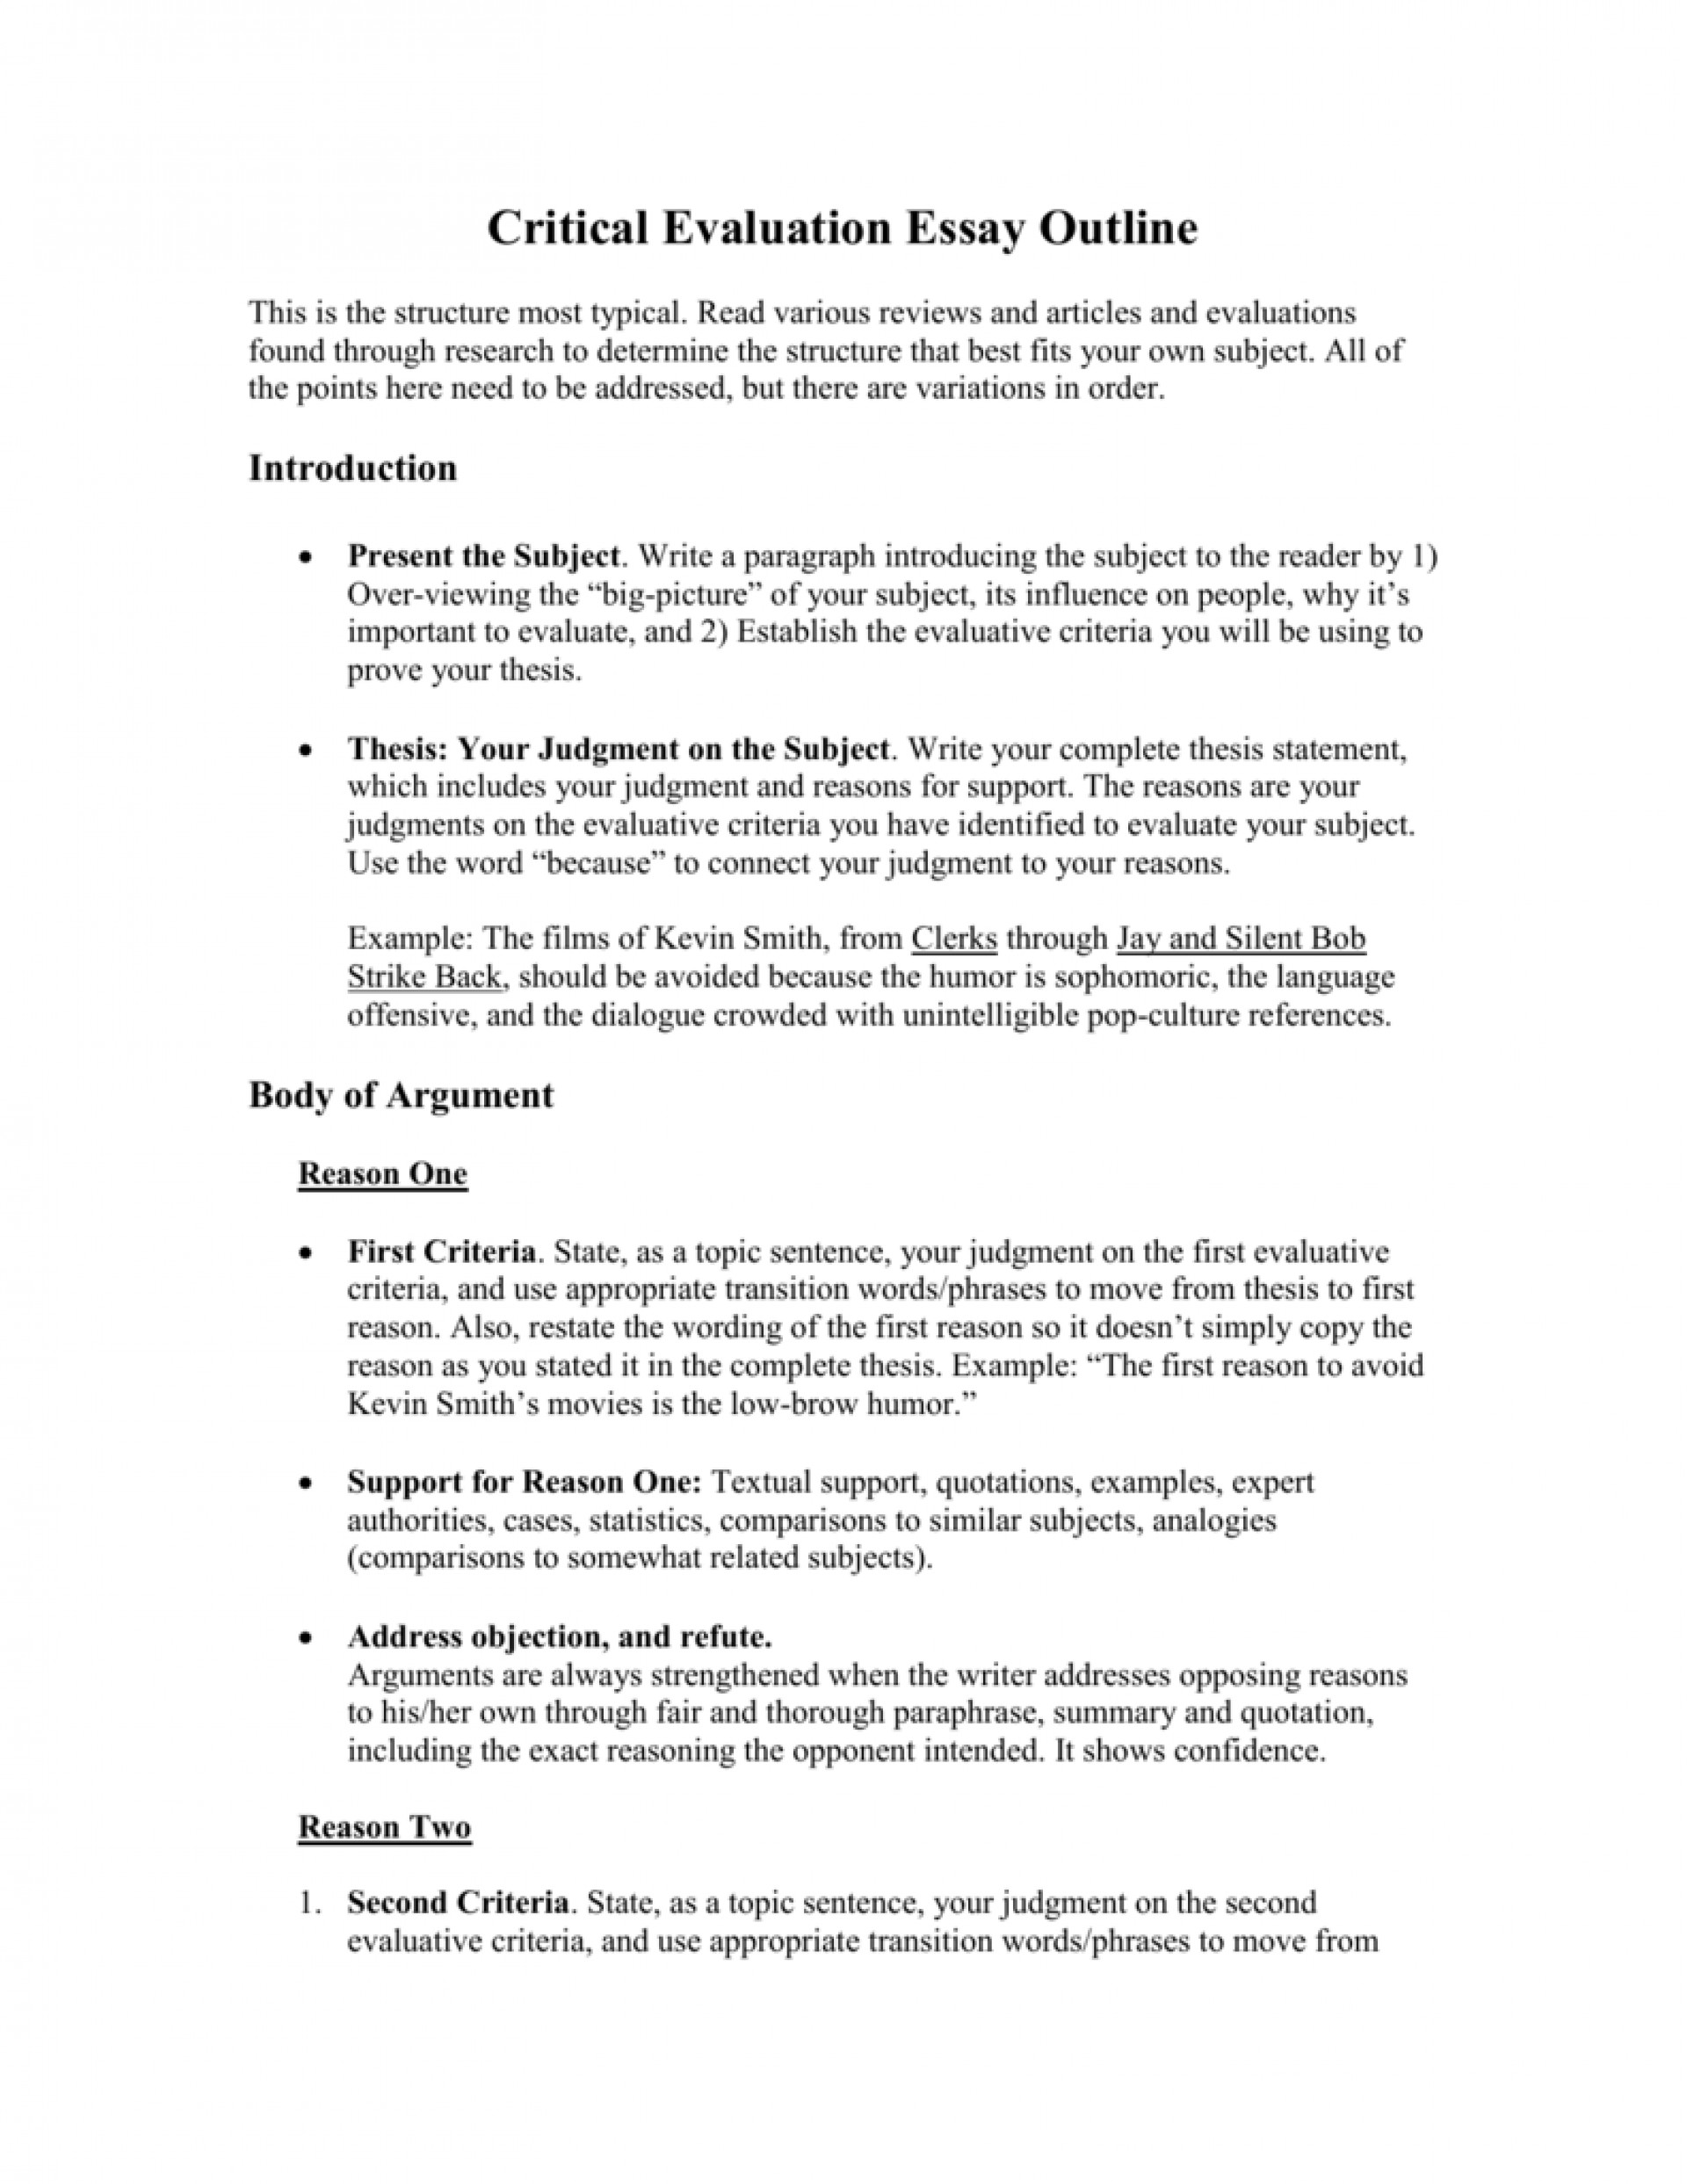 012 007278317 1 Essay Example Evaluation Formidable Examples Critical Outline Thesis Course 1920